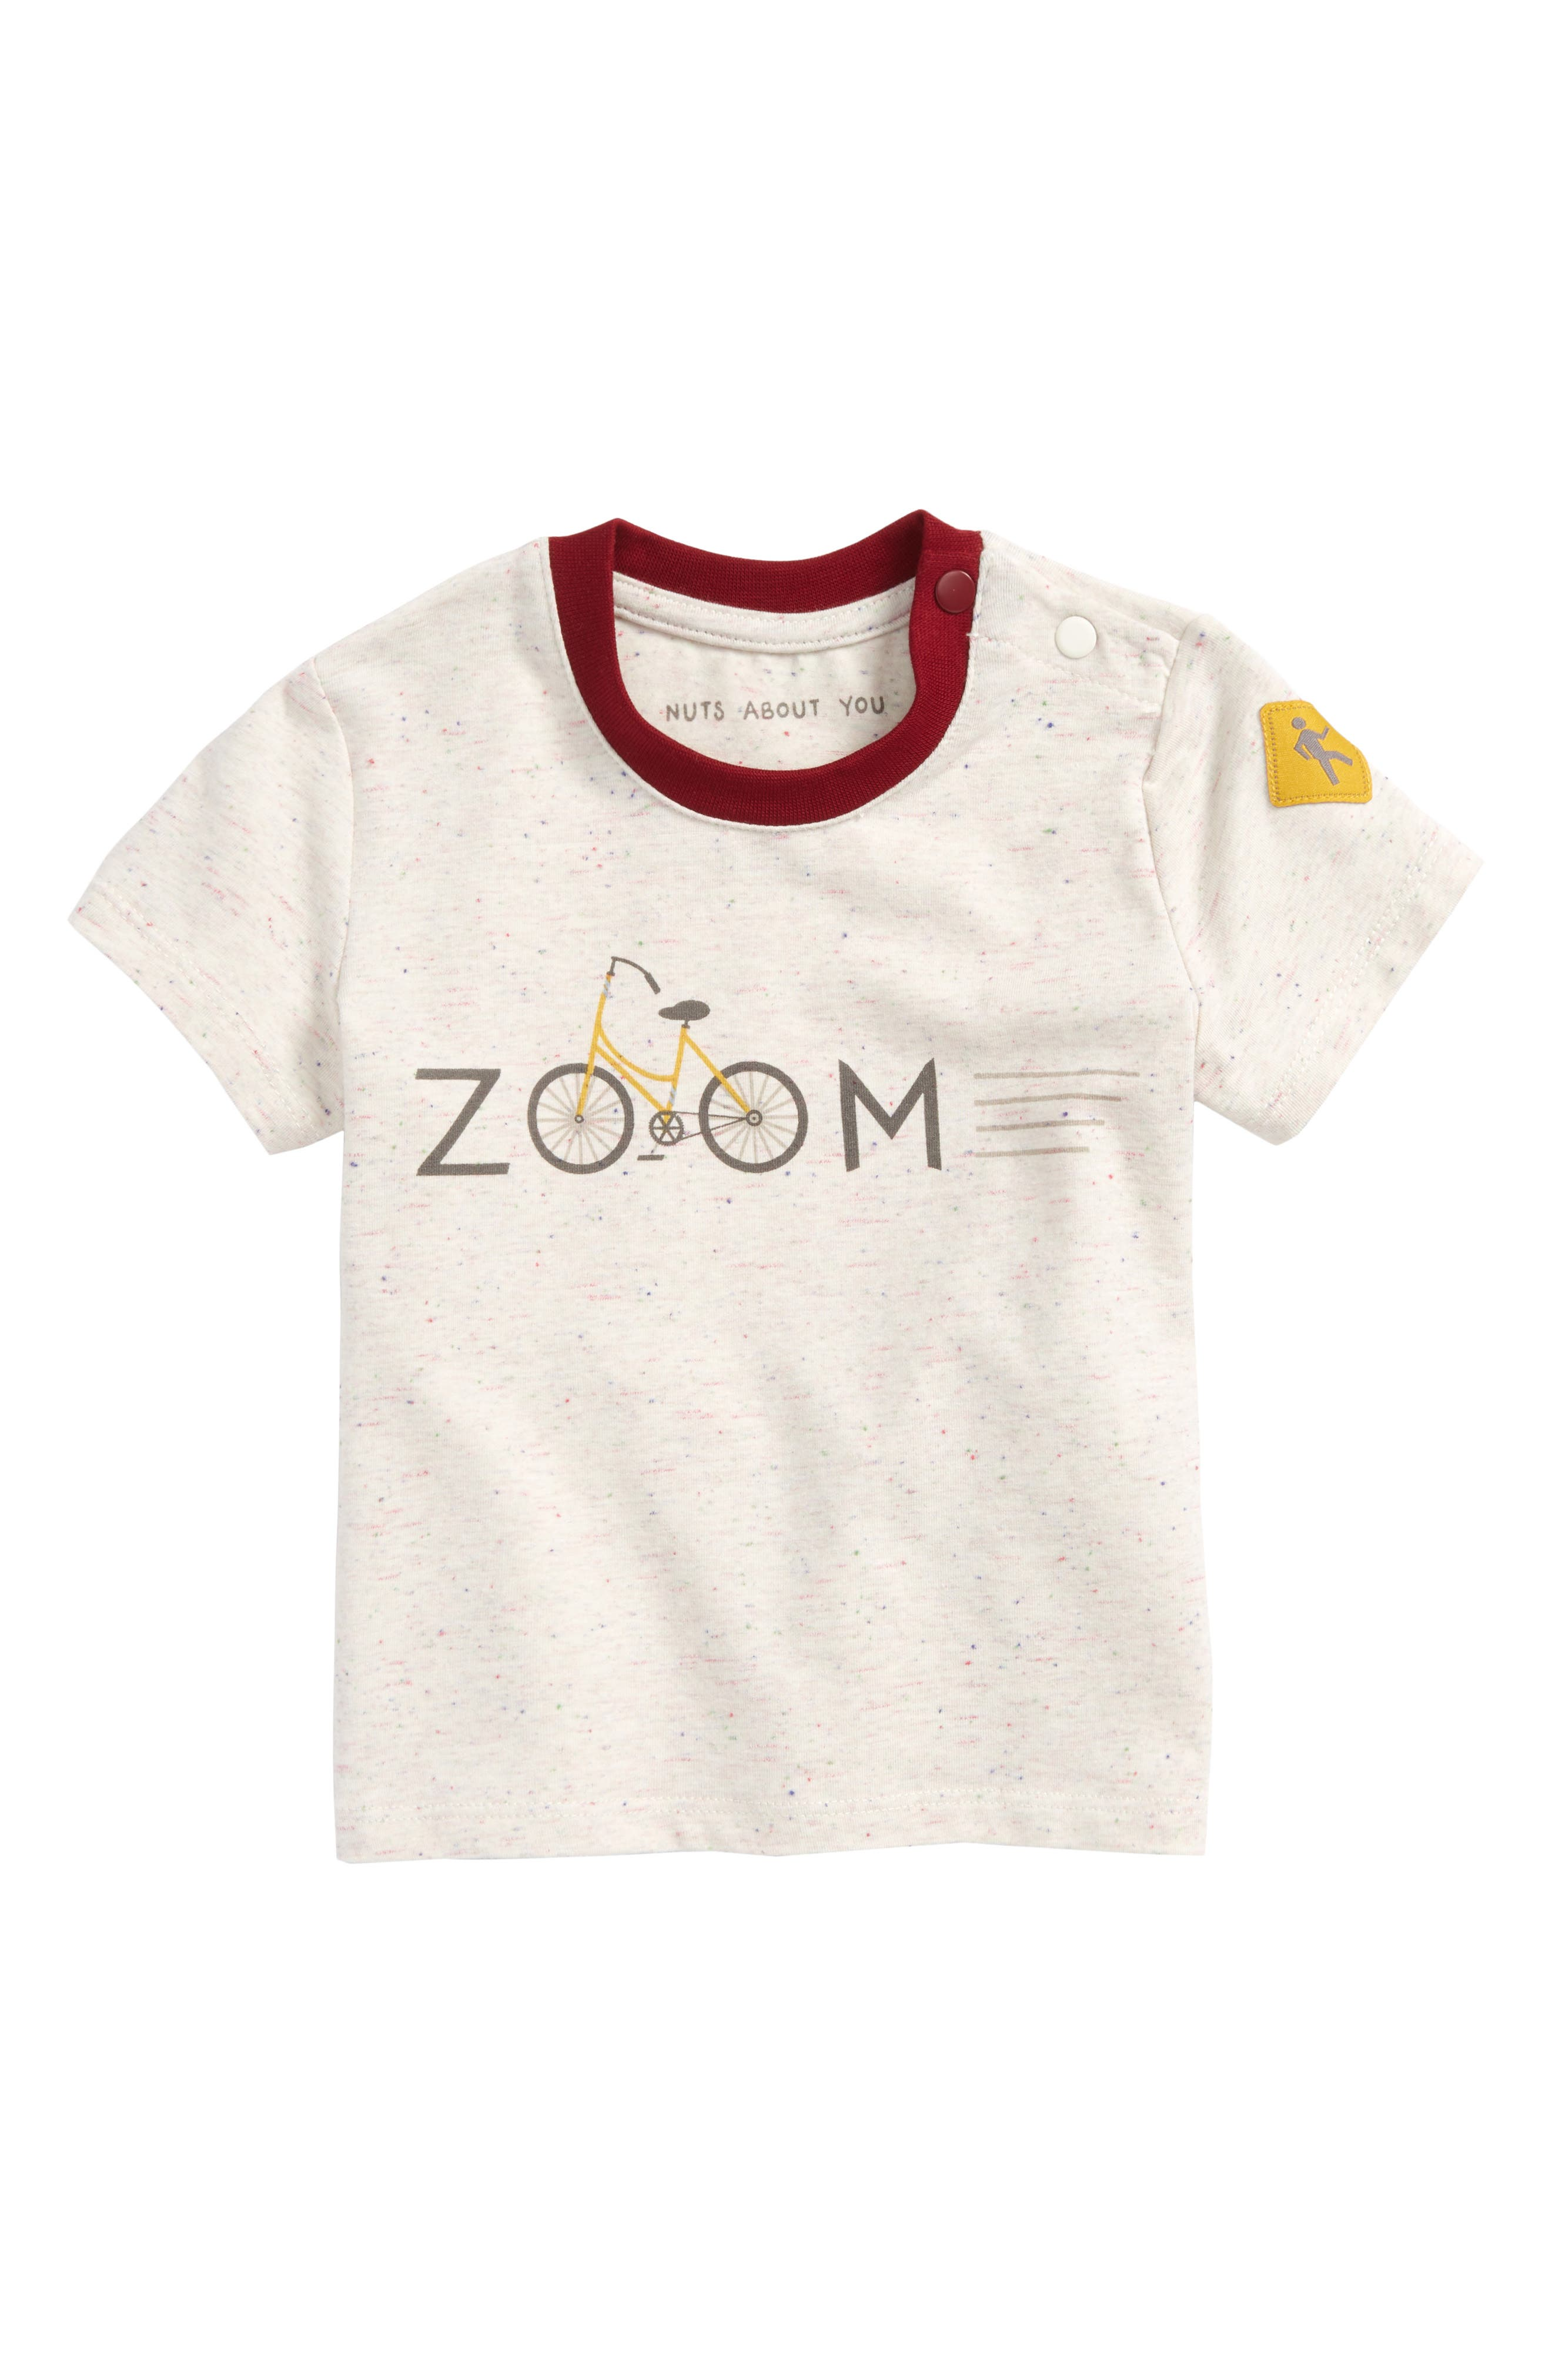 Zoom Graphic T-Shirt,                             Main thumbnail 1, color,                             White